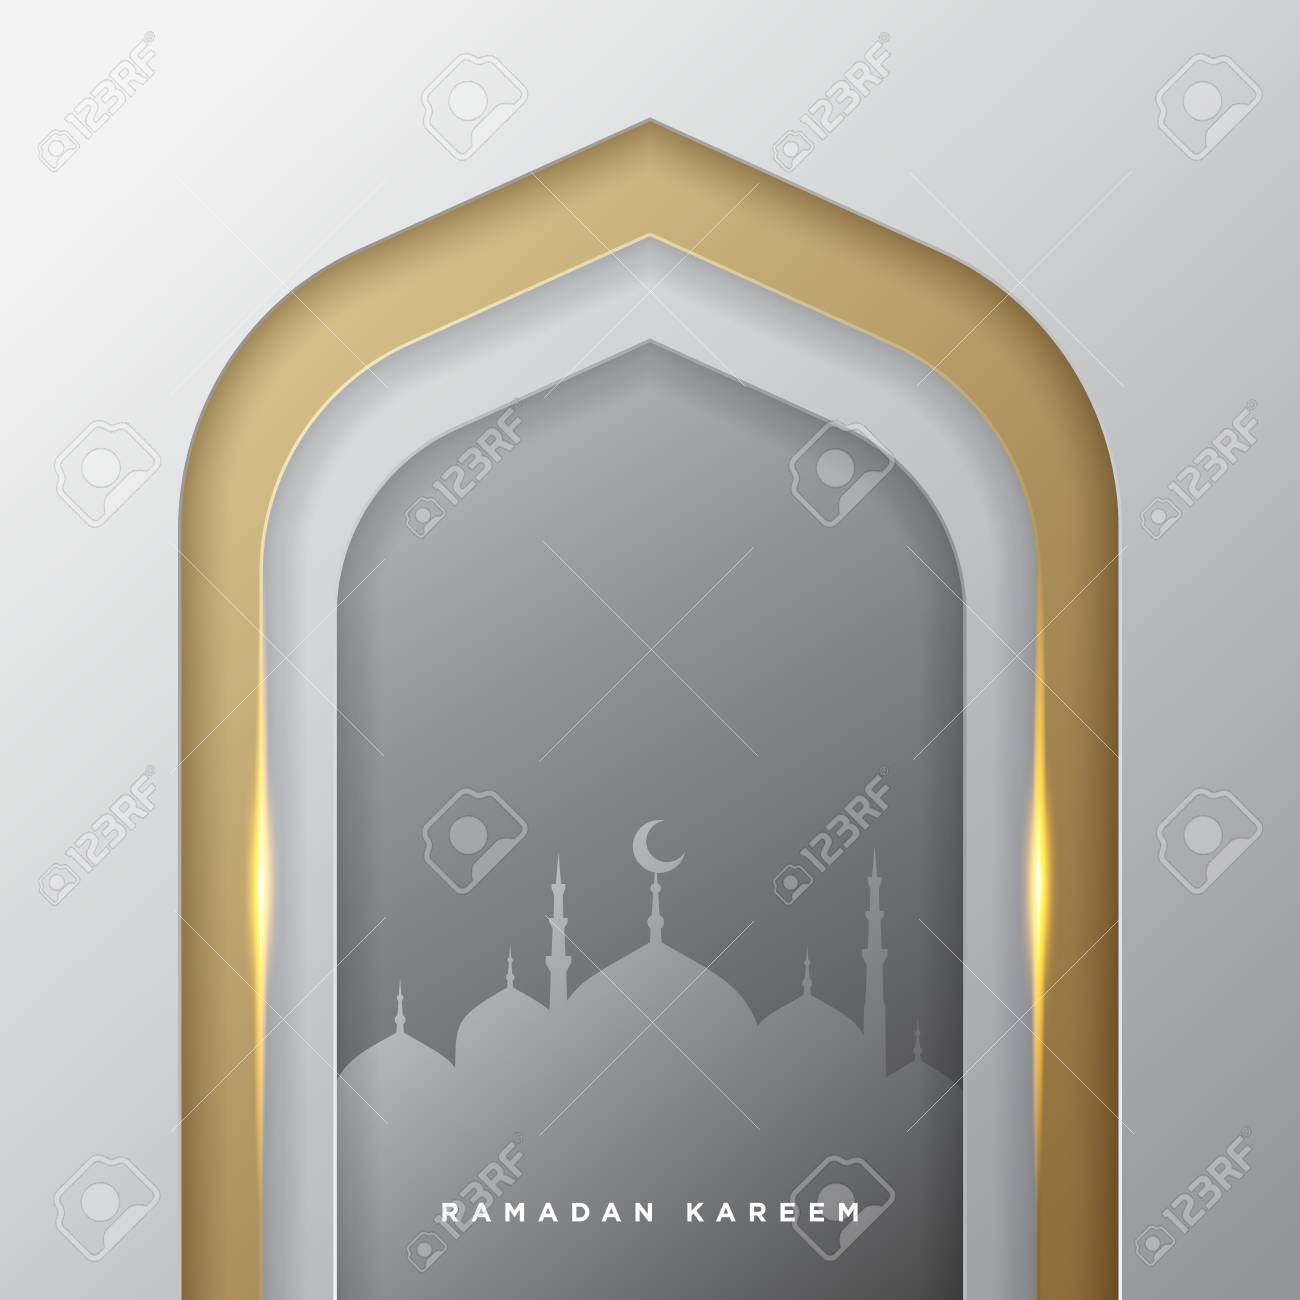 Islamic mosque door for ramadan kareem vector greeting banner background with art paper cut style, golden silver and mosque scenery. Creative design card, poster. Traditional Islamic holiday - 121567006